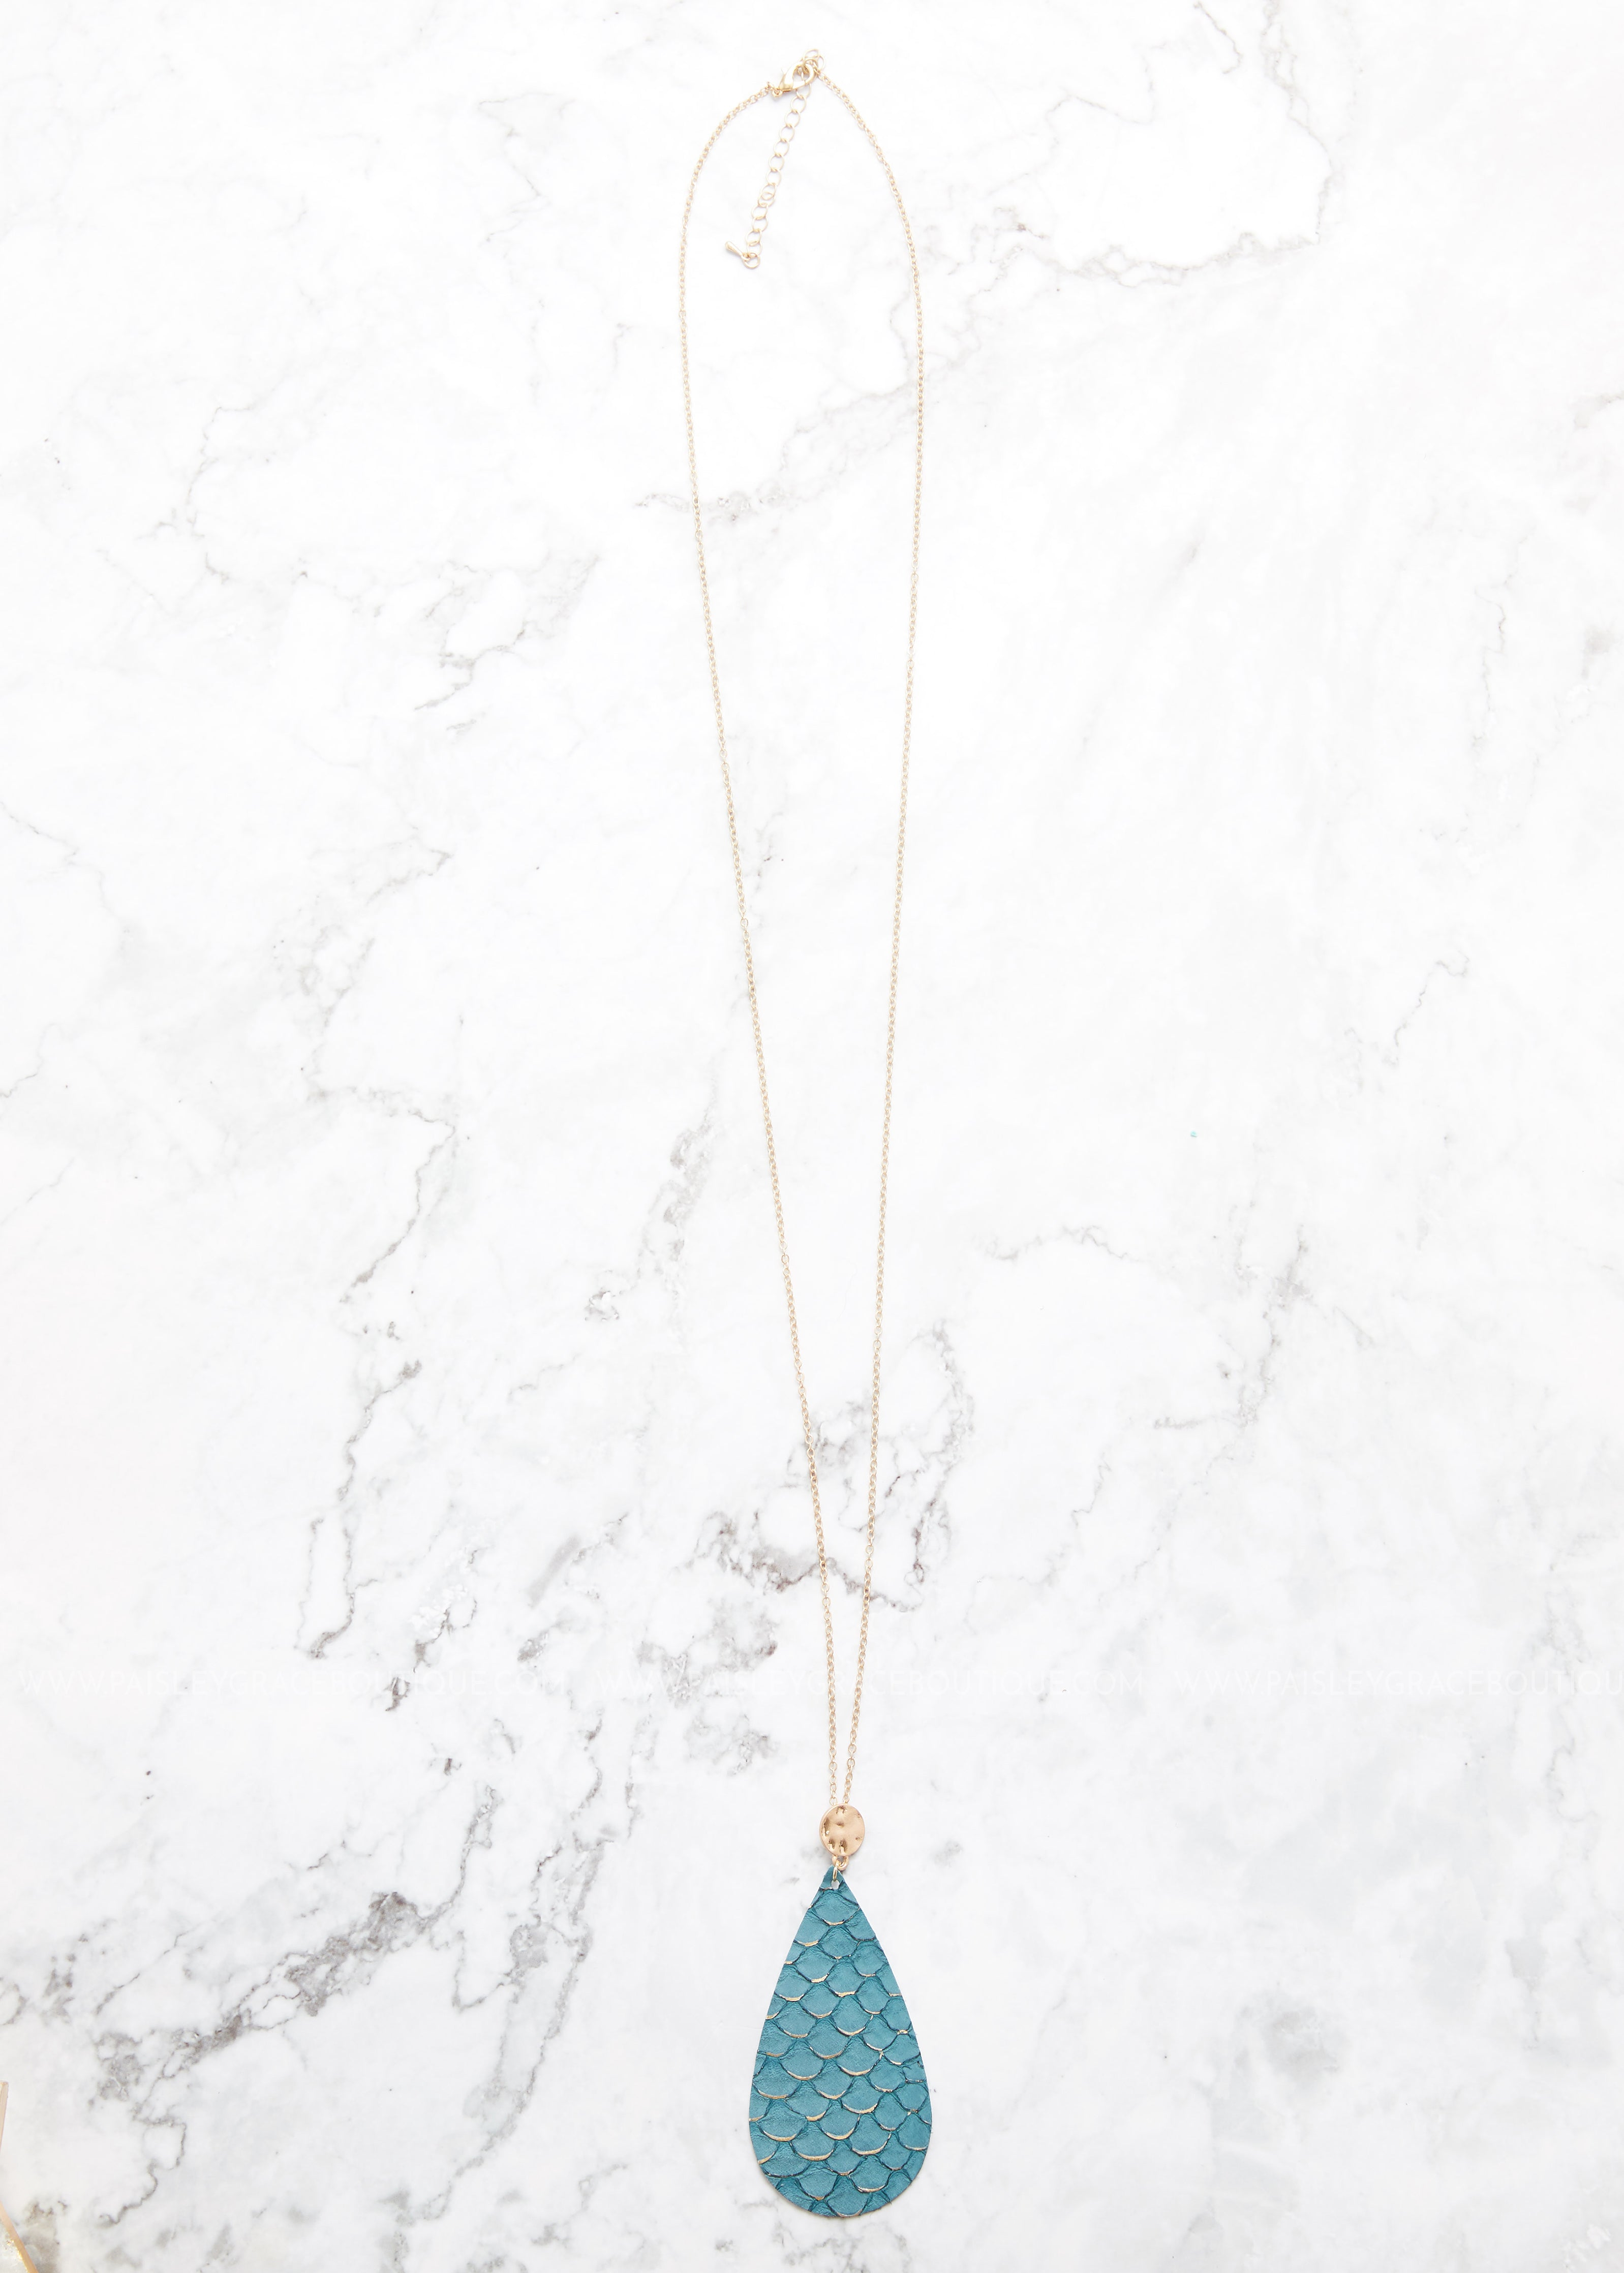 Leather Teardrop Necklace- Teal